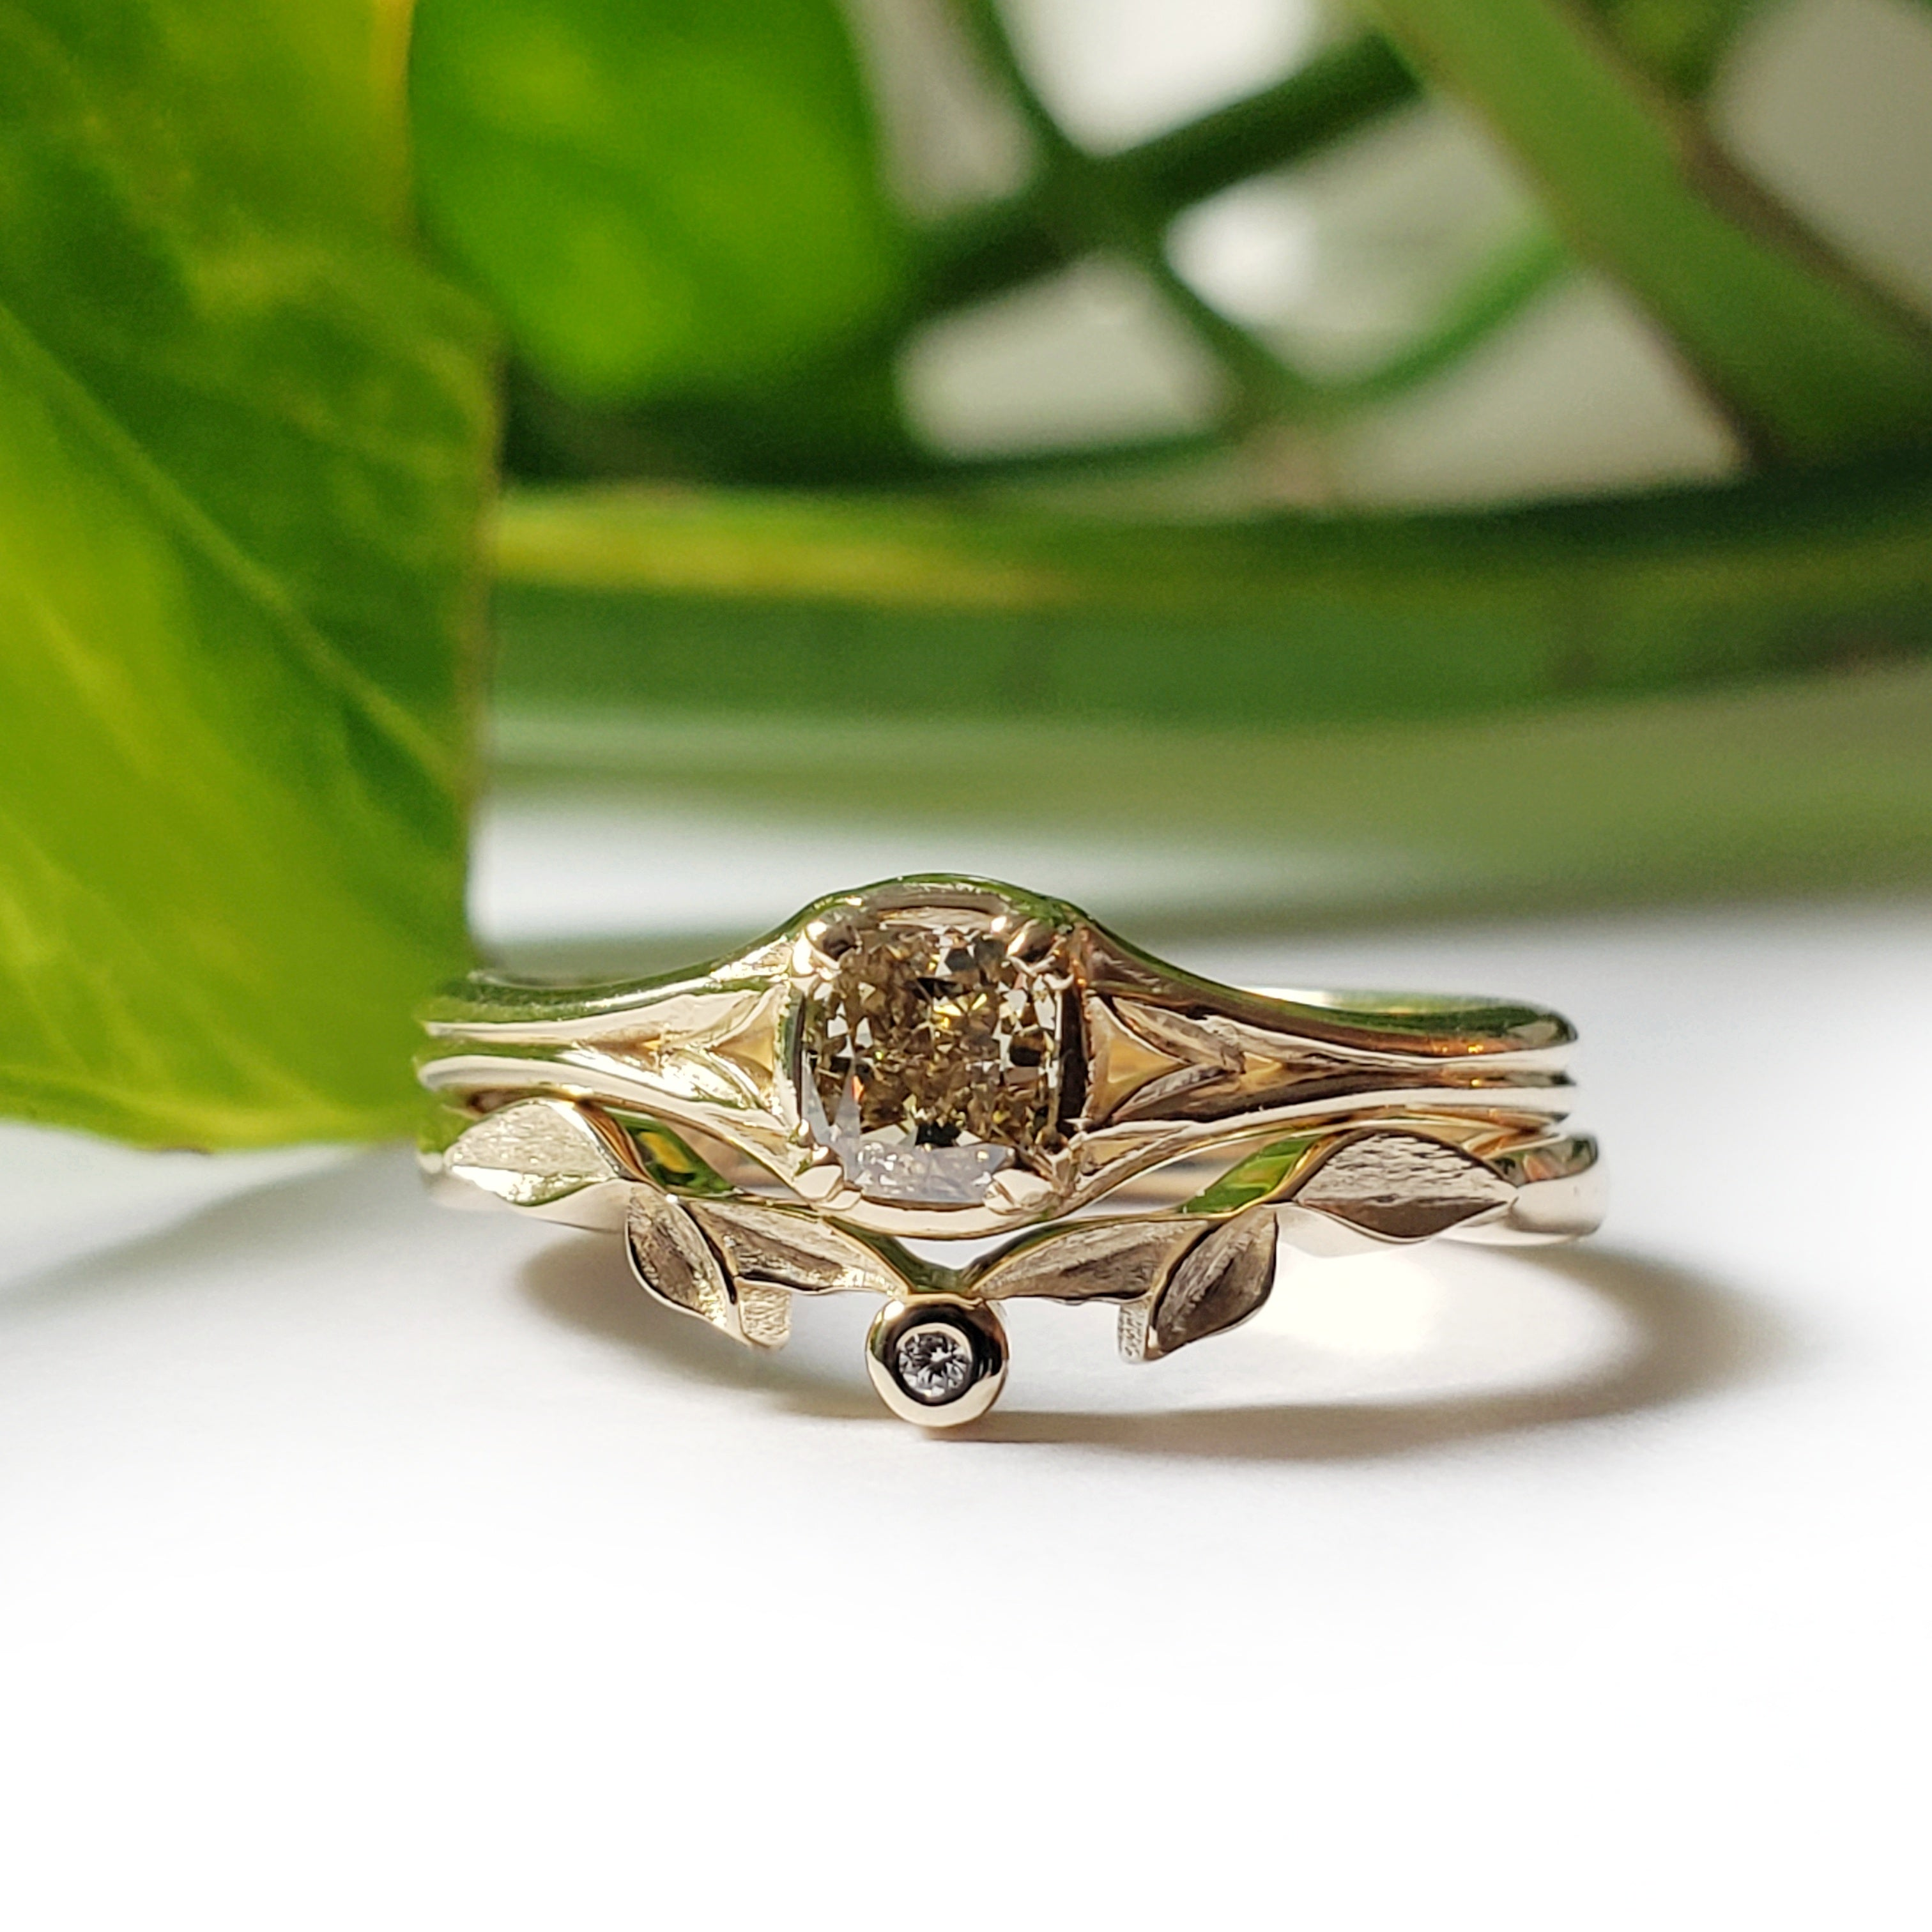 14kt yellow gold Idril engagement ring cushion cut cognac brown diamond solitaire leafy era design